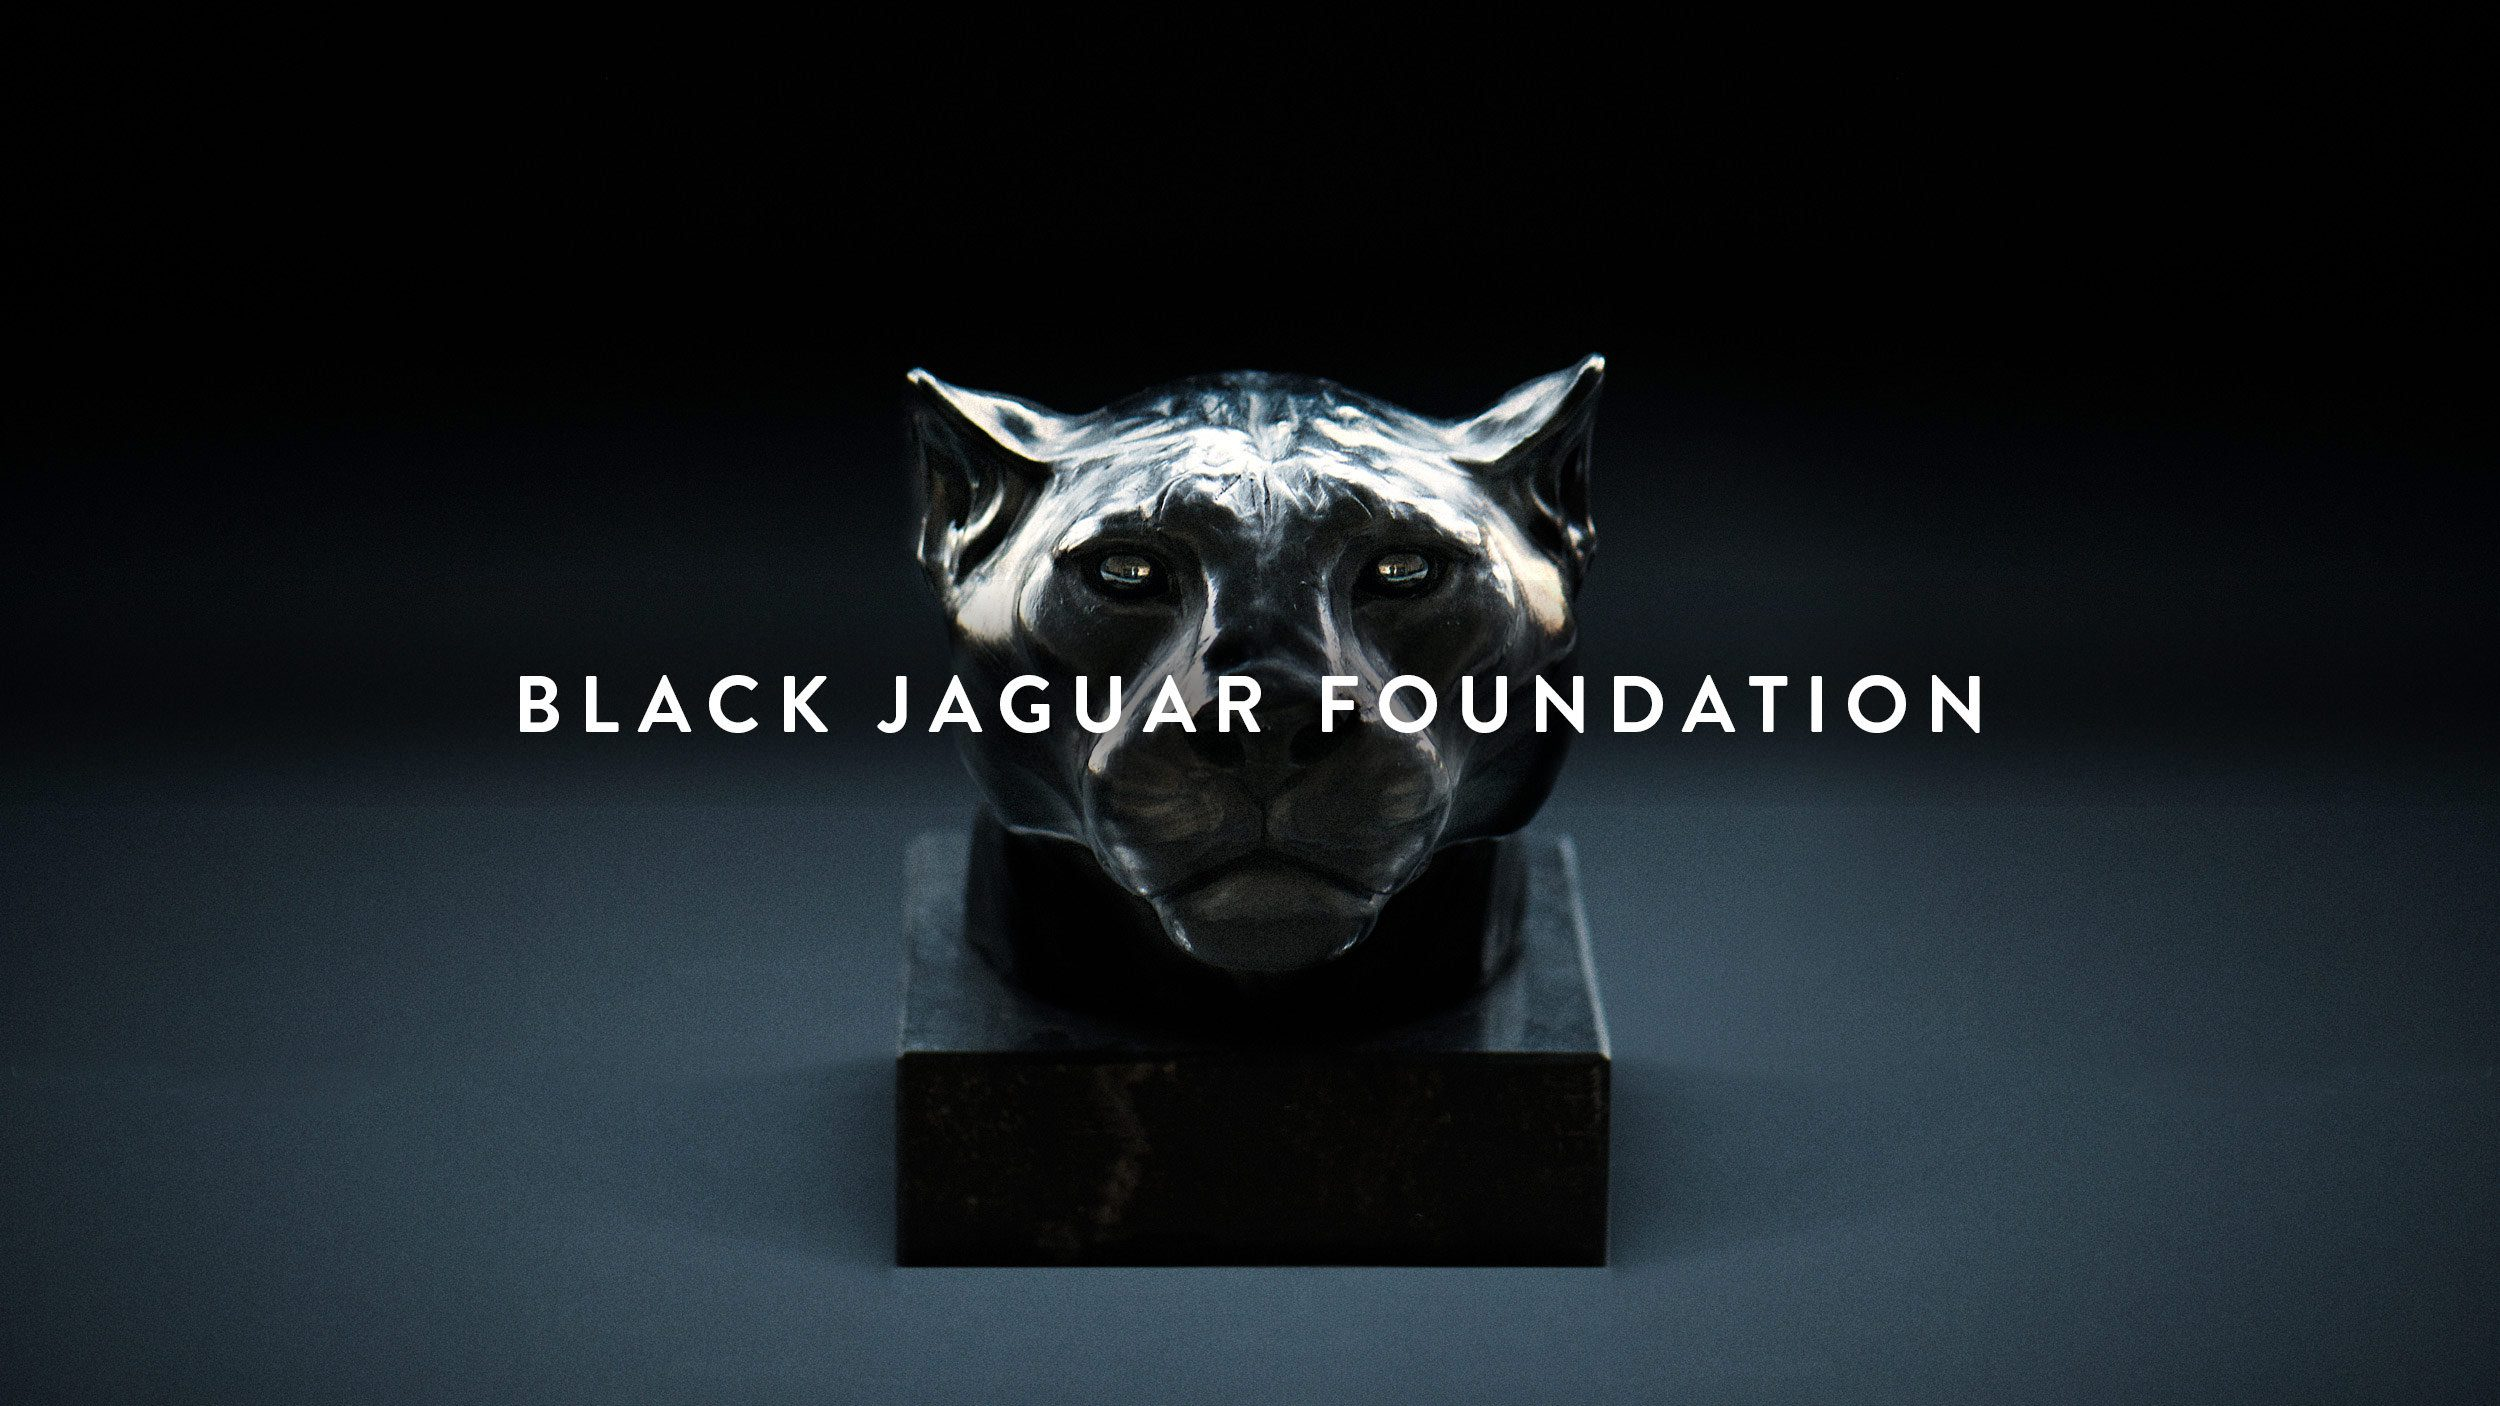 BJF, Black Jaguar Foundation, Keyvisual, Jaguarkopf, Statue